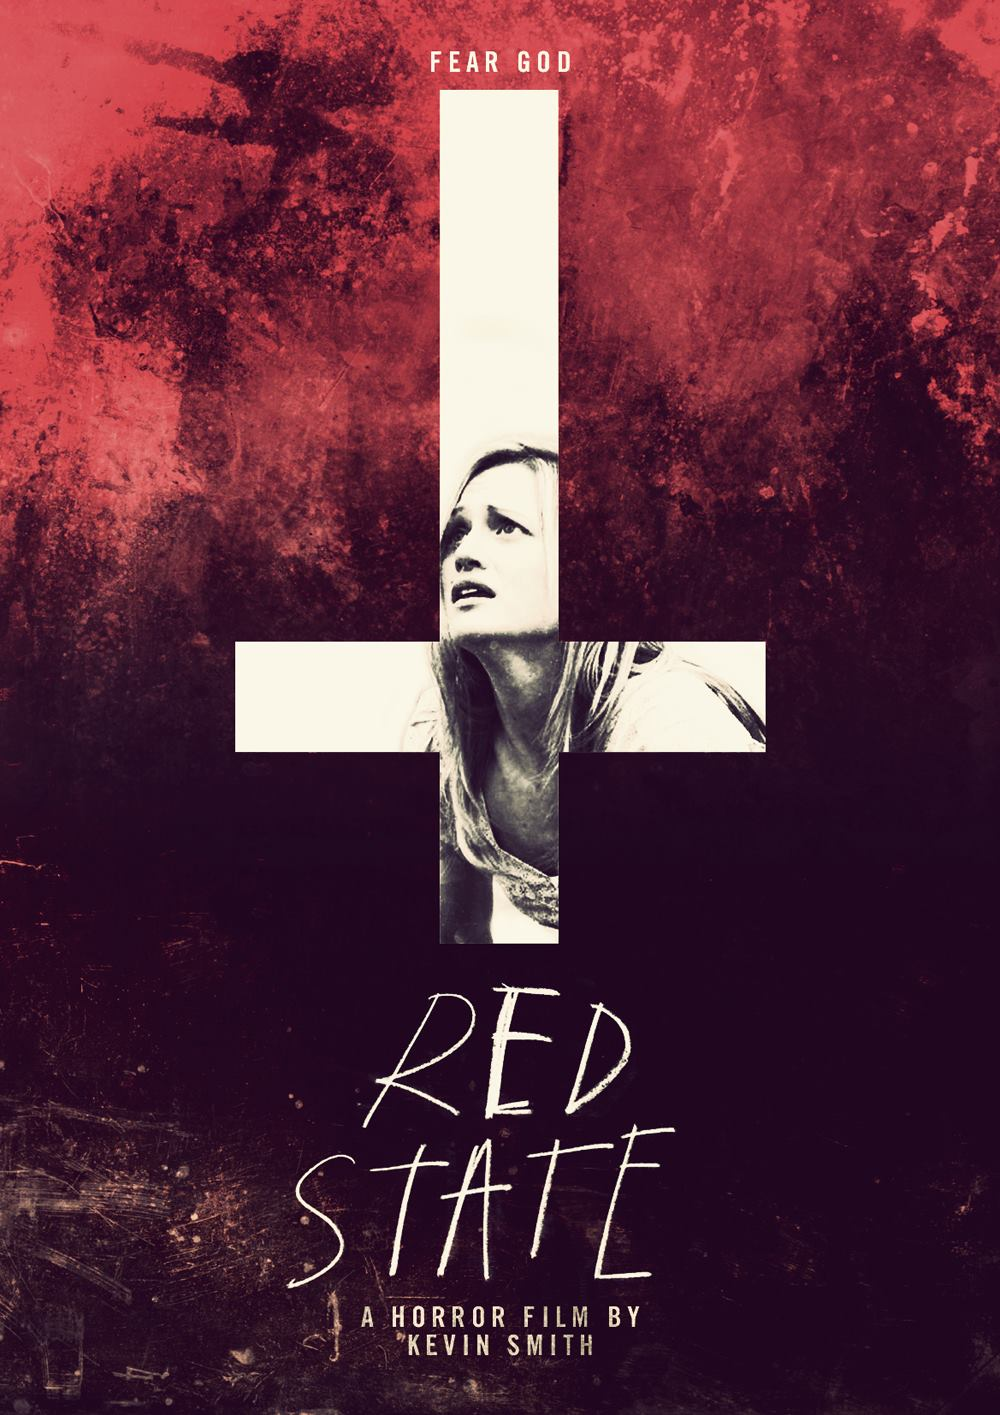 [RECENSIONE] Red State